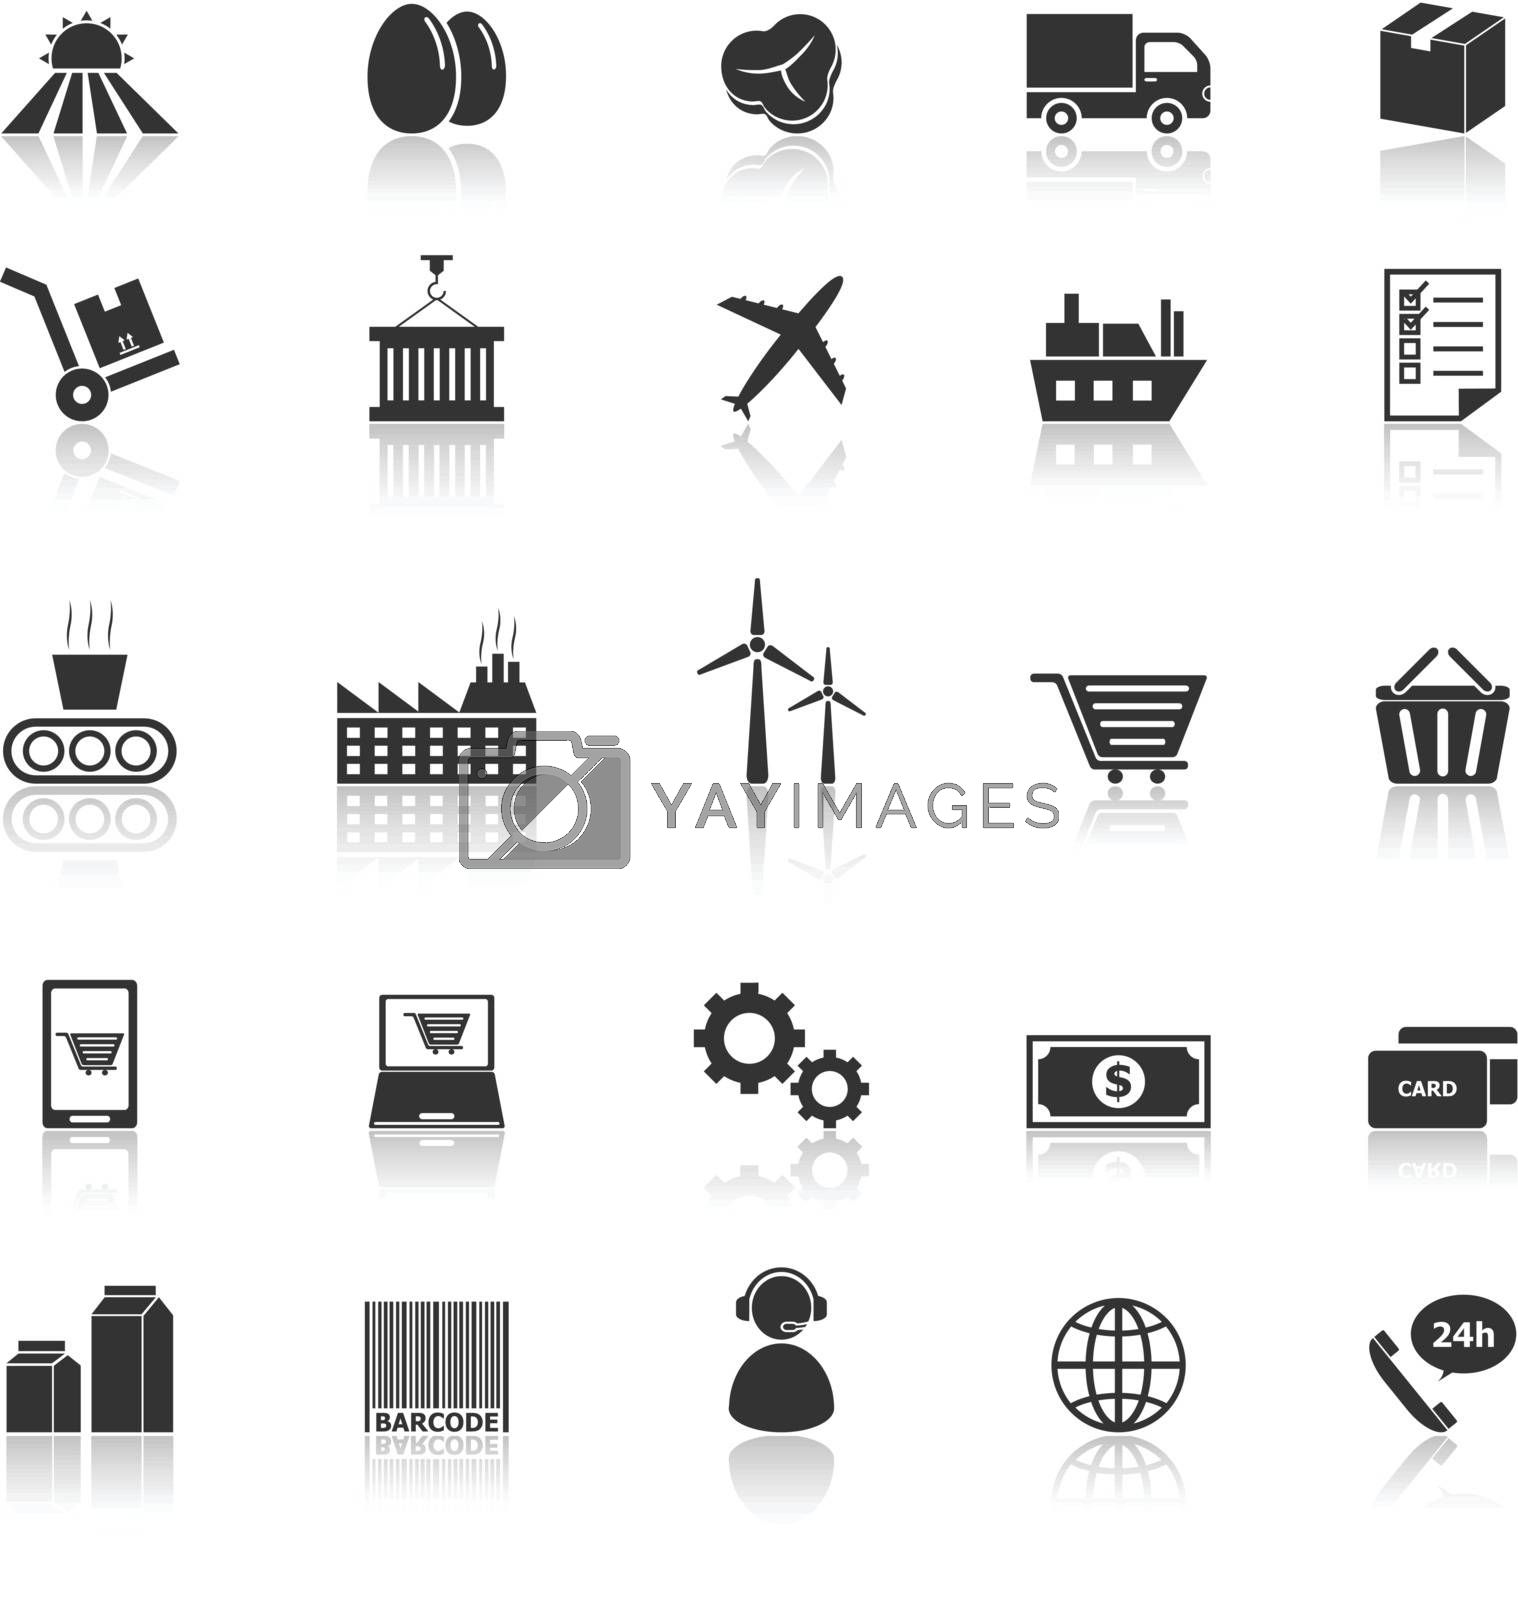 Supply chain icons with reflect on white background, stock vector